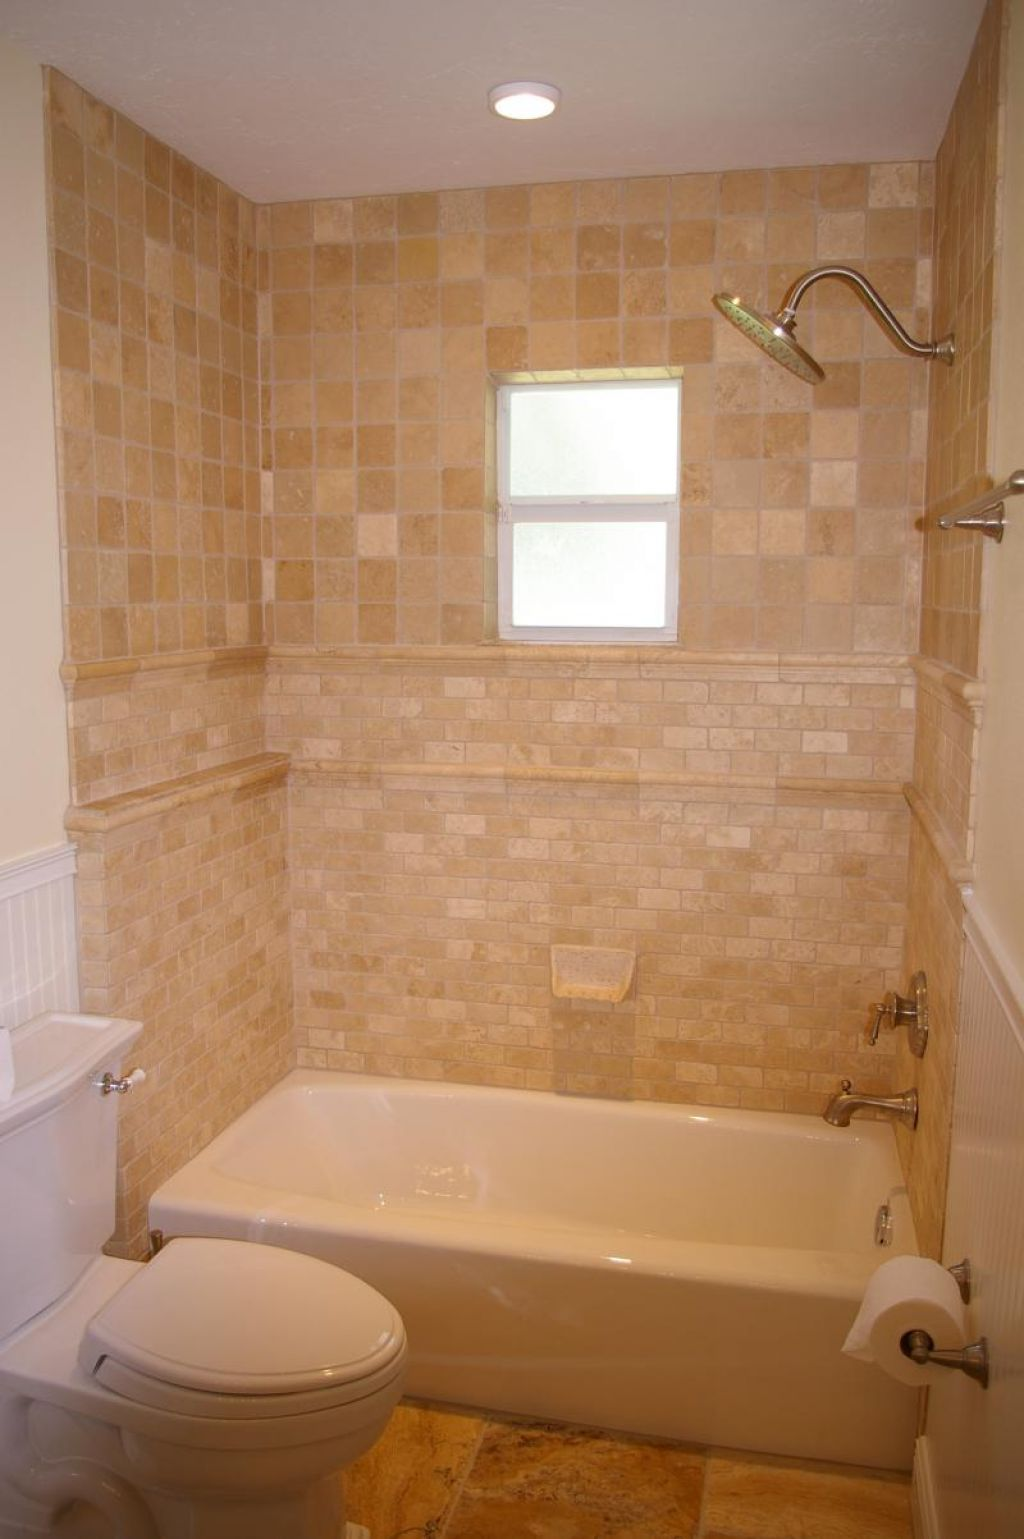 30 shower tile ideas on a budget for Bathroom picture ideas